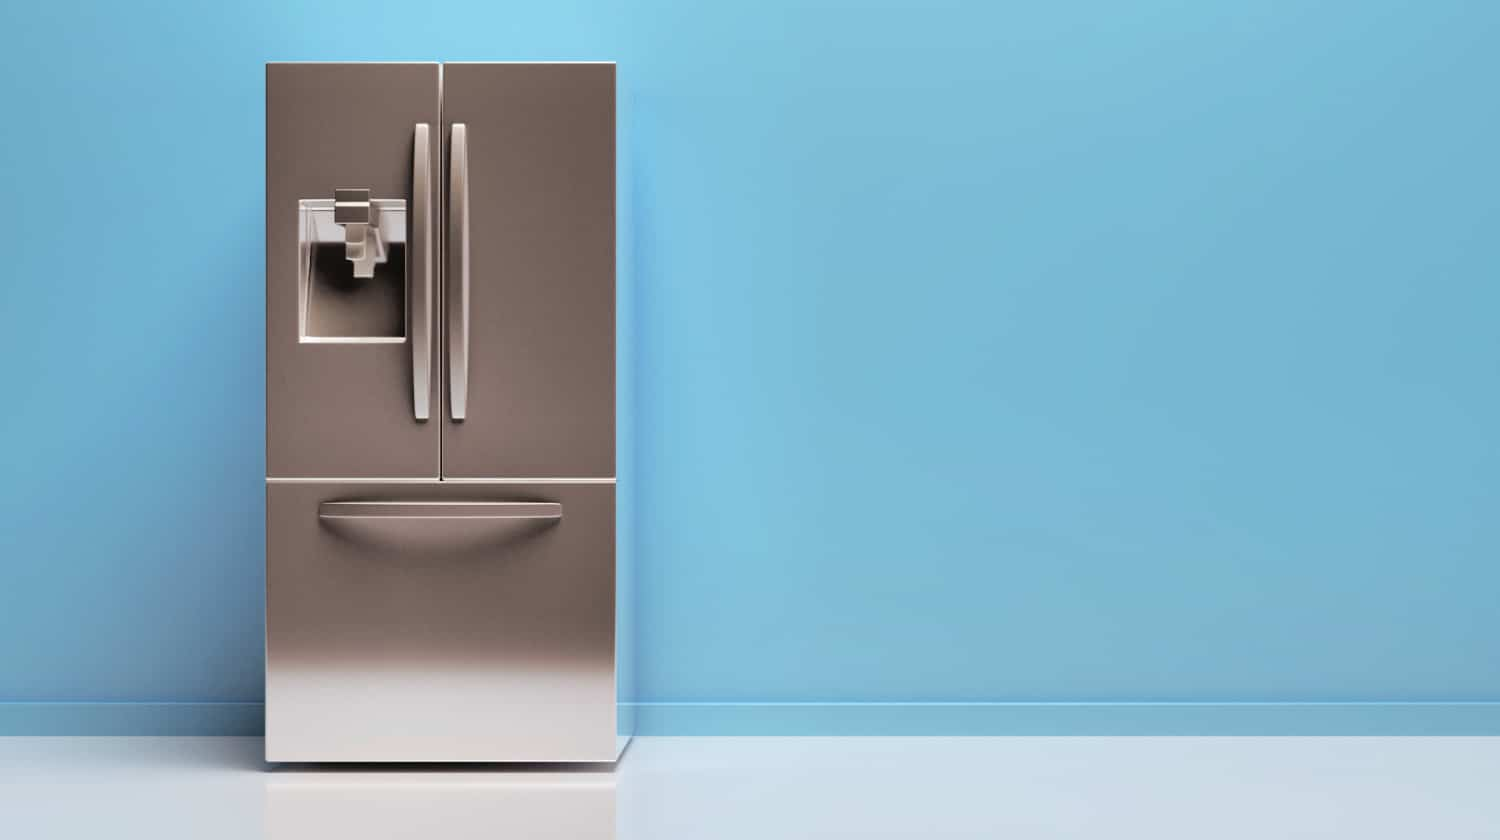 Clean and shiny stainless steel French door refrigerator sitting alone against a blank blue wall.